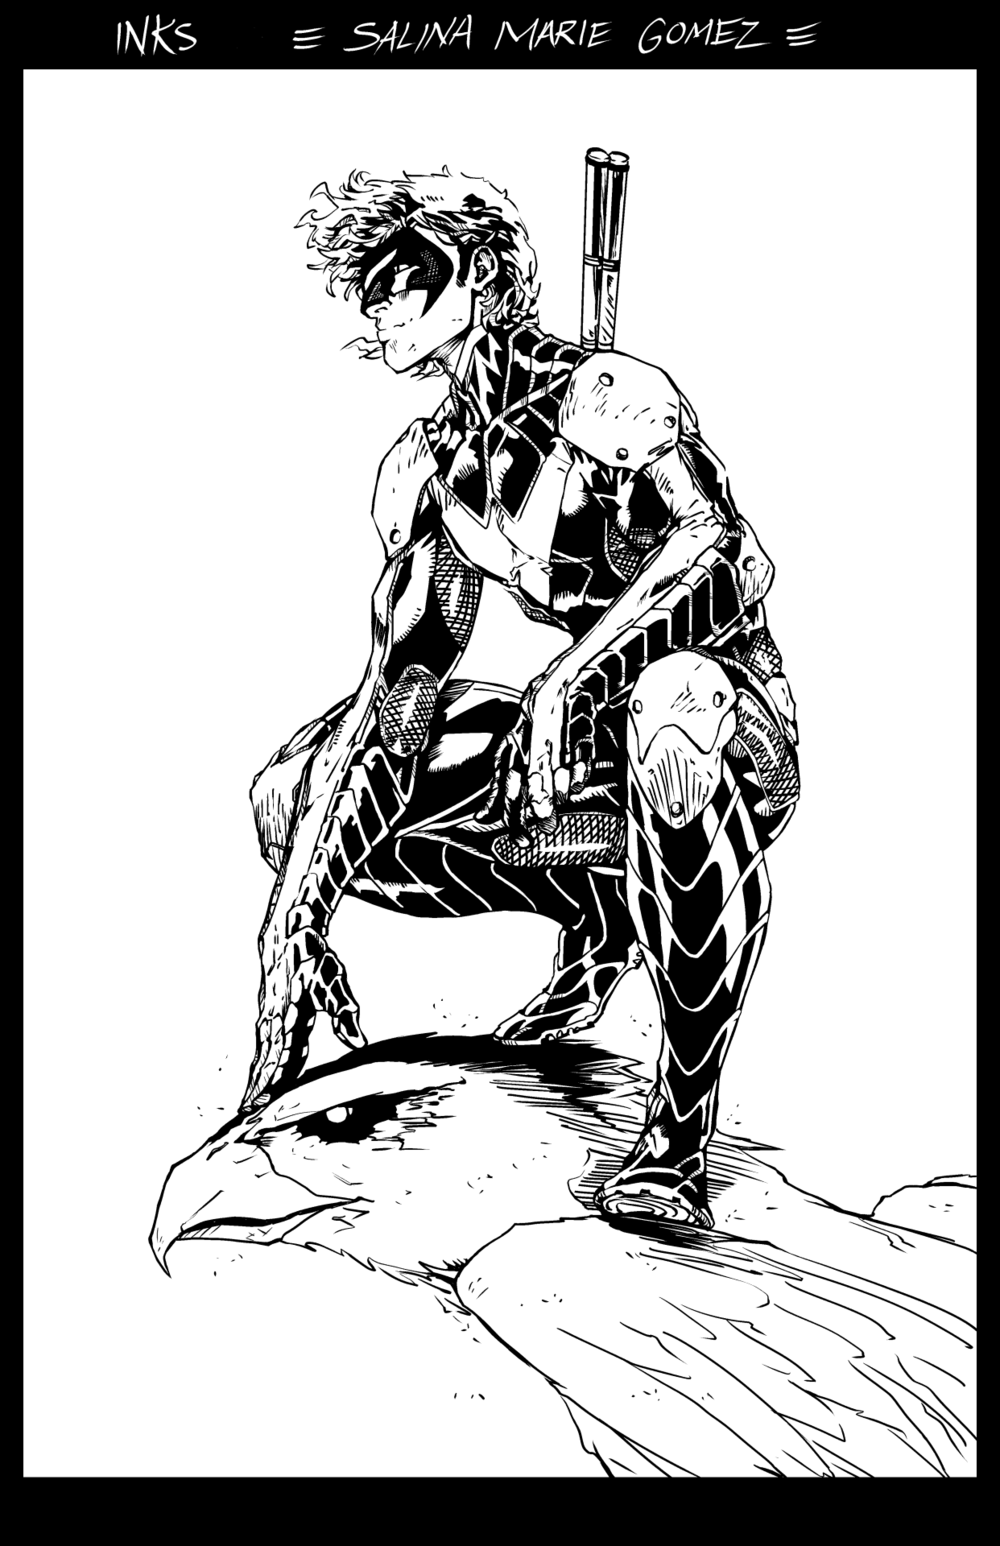 I digitally inked a Brett Booth piece (pencil) of Nightwing, for practice. I really liked working on his pencils, more so than the Paulo Siqueira pencils I did in September, because Booth's pencils have a fast quality to them, and they are a bit more loose than Siqueira's, which allows more room for interpretation on the inker's end.   When I have room to interpret pencils, I tend to be more engaged with the process and am able to work more magic on the piece than if the pencils were so tight that all I had to do was tediously trace them (which is not as fun but still rewarding in it's own right).